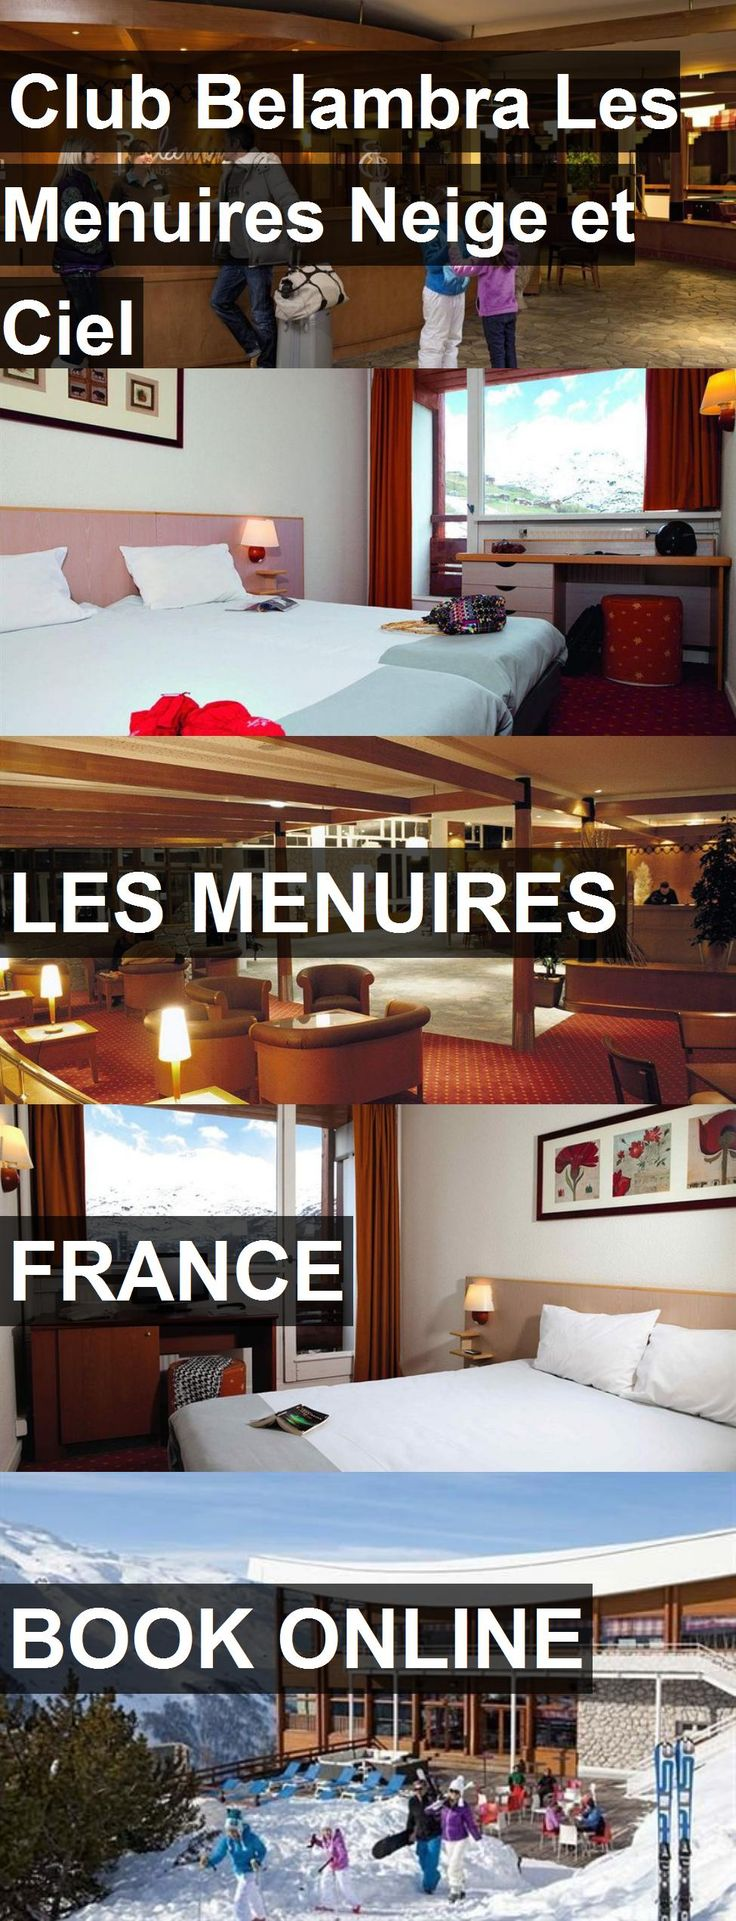 Hotel Club Belambra Les Menuires Neige et Ciel in Les Menuires, France. For more information, photos, reviews and best prices please follow the link. #France #LesMenuires #travel #vacation #hotel